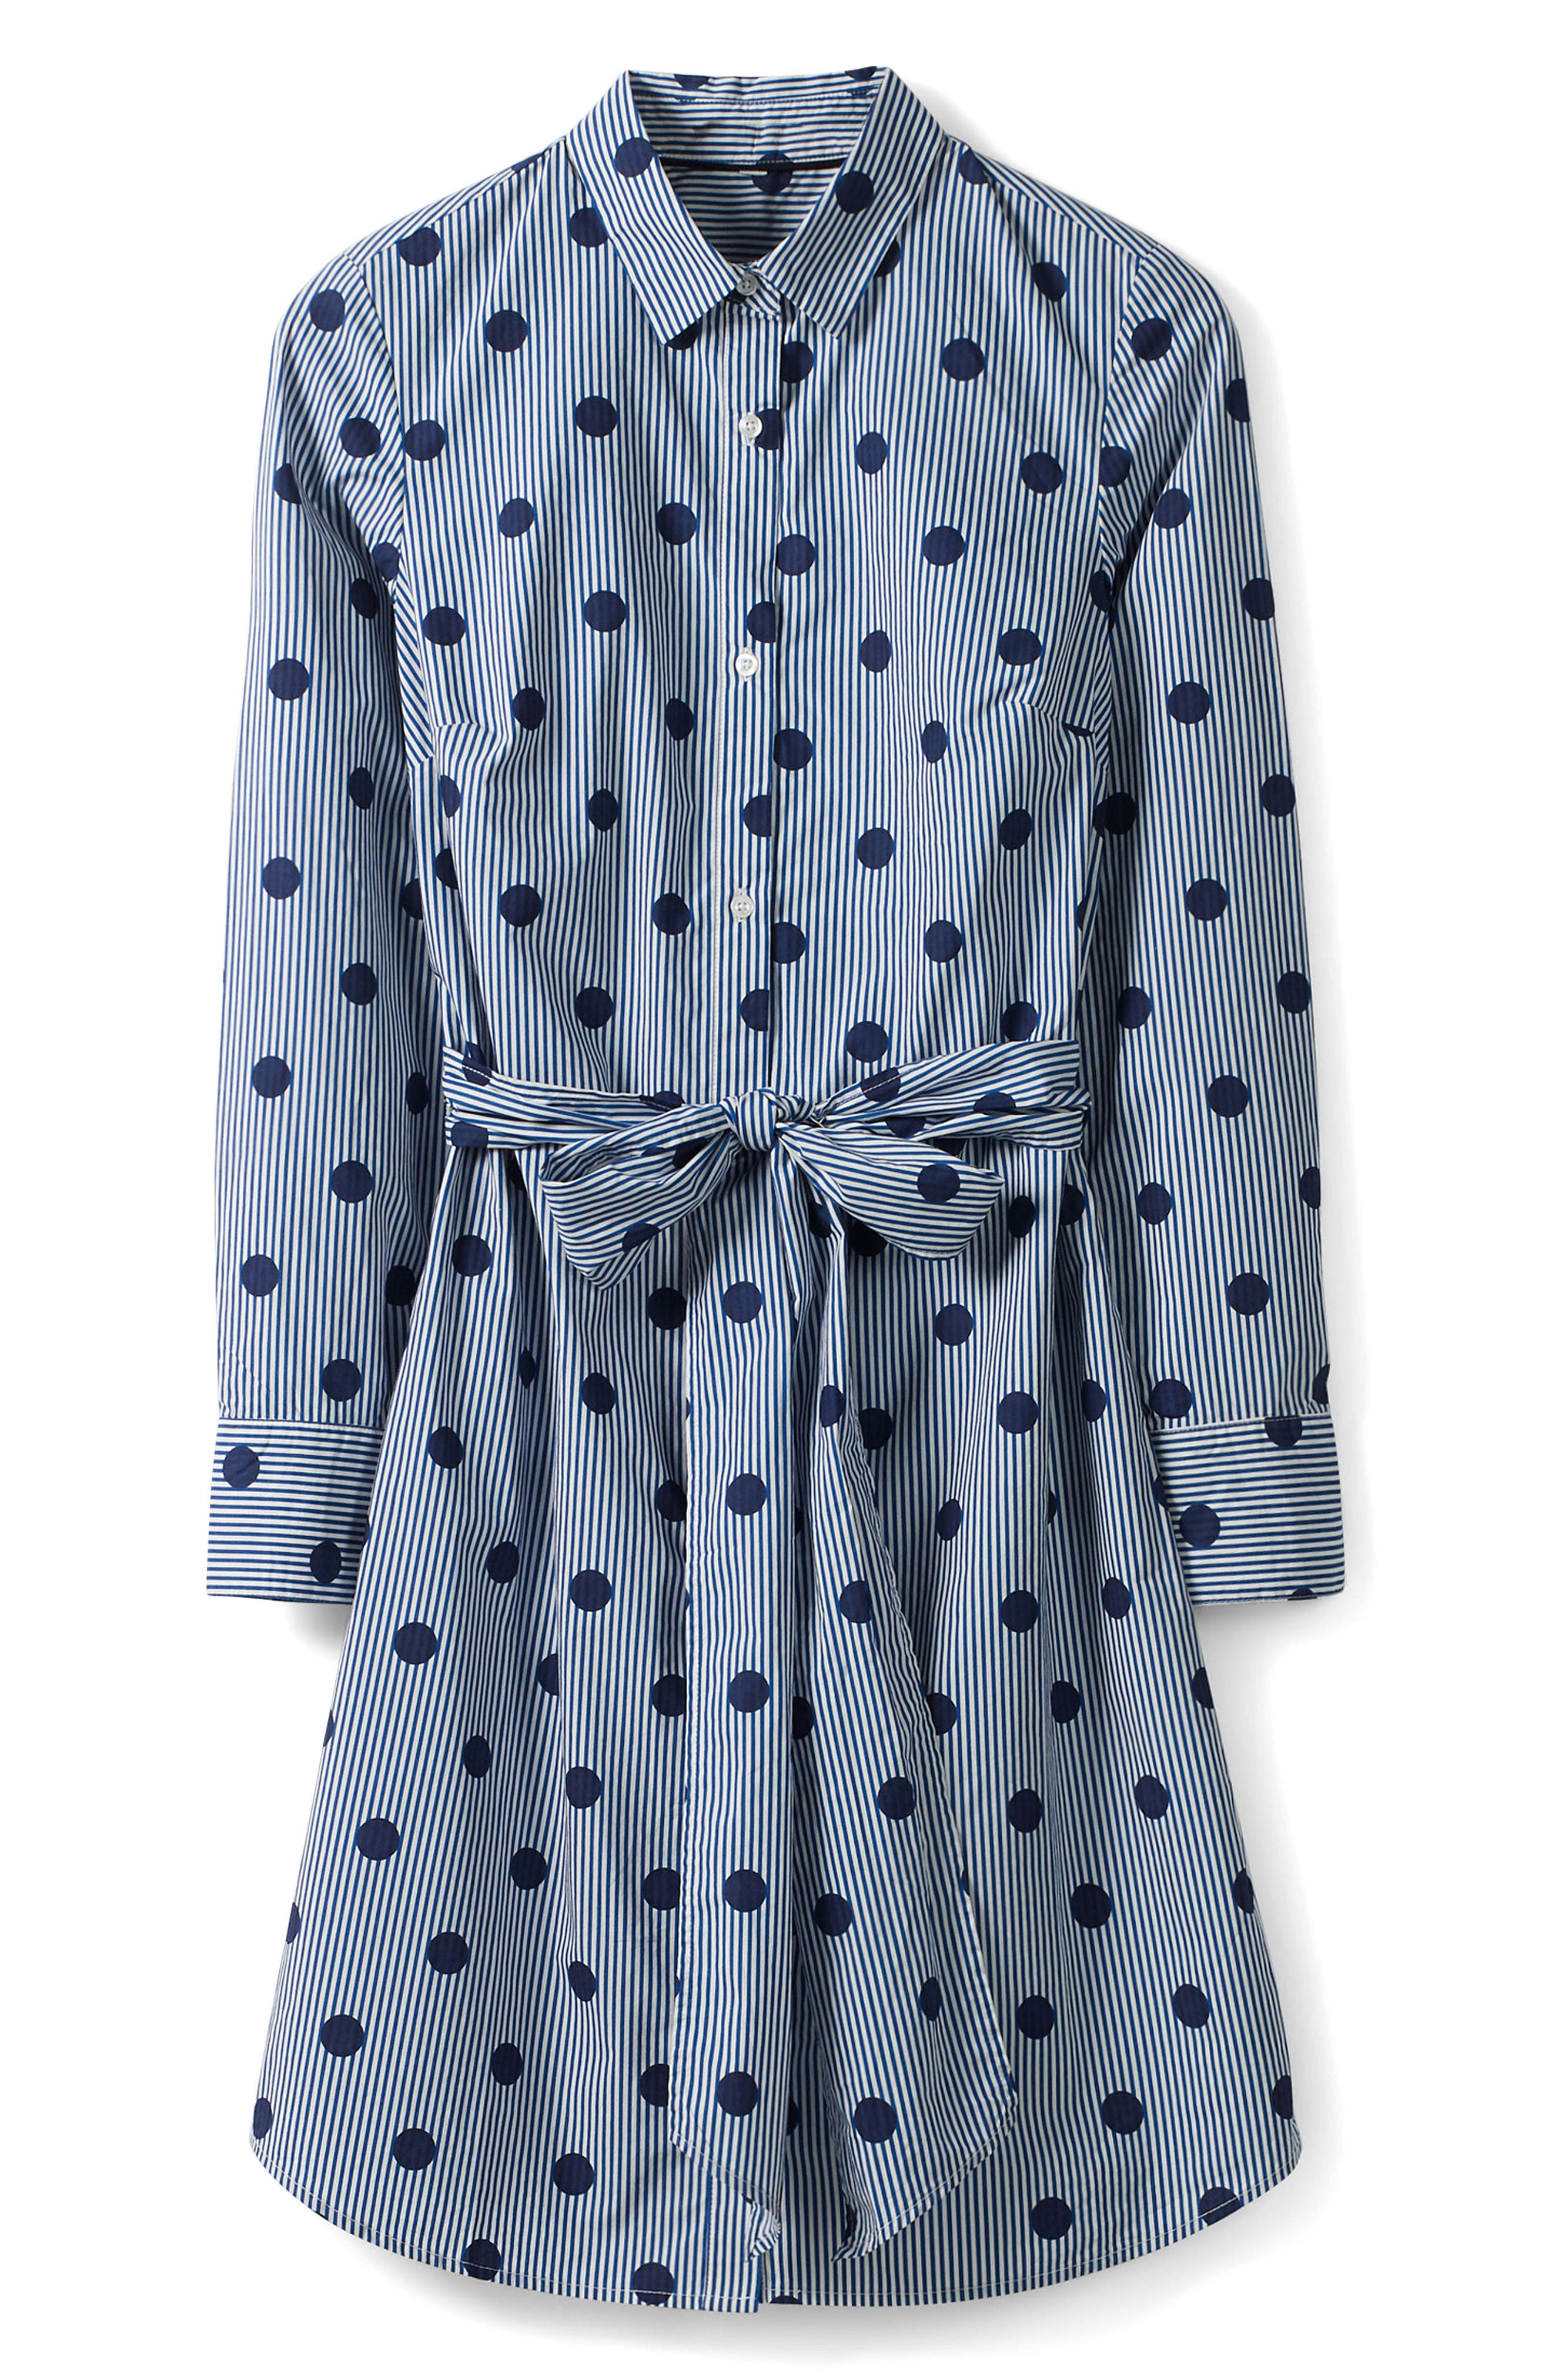 Trend Stripe Dot Cotton Shirtdress,                             Alternate thumbnail 7, color,                             Navy Spot On Stripe